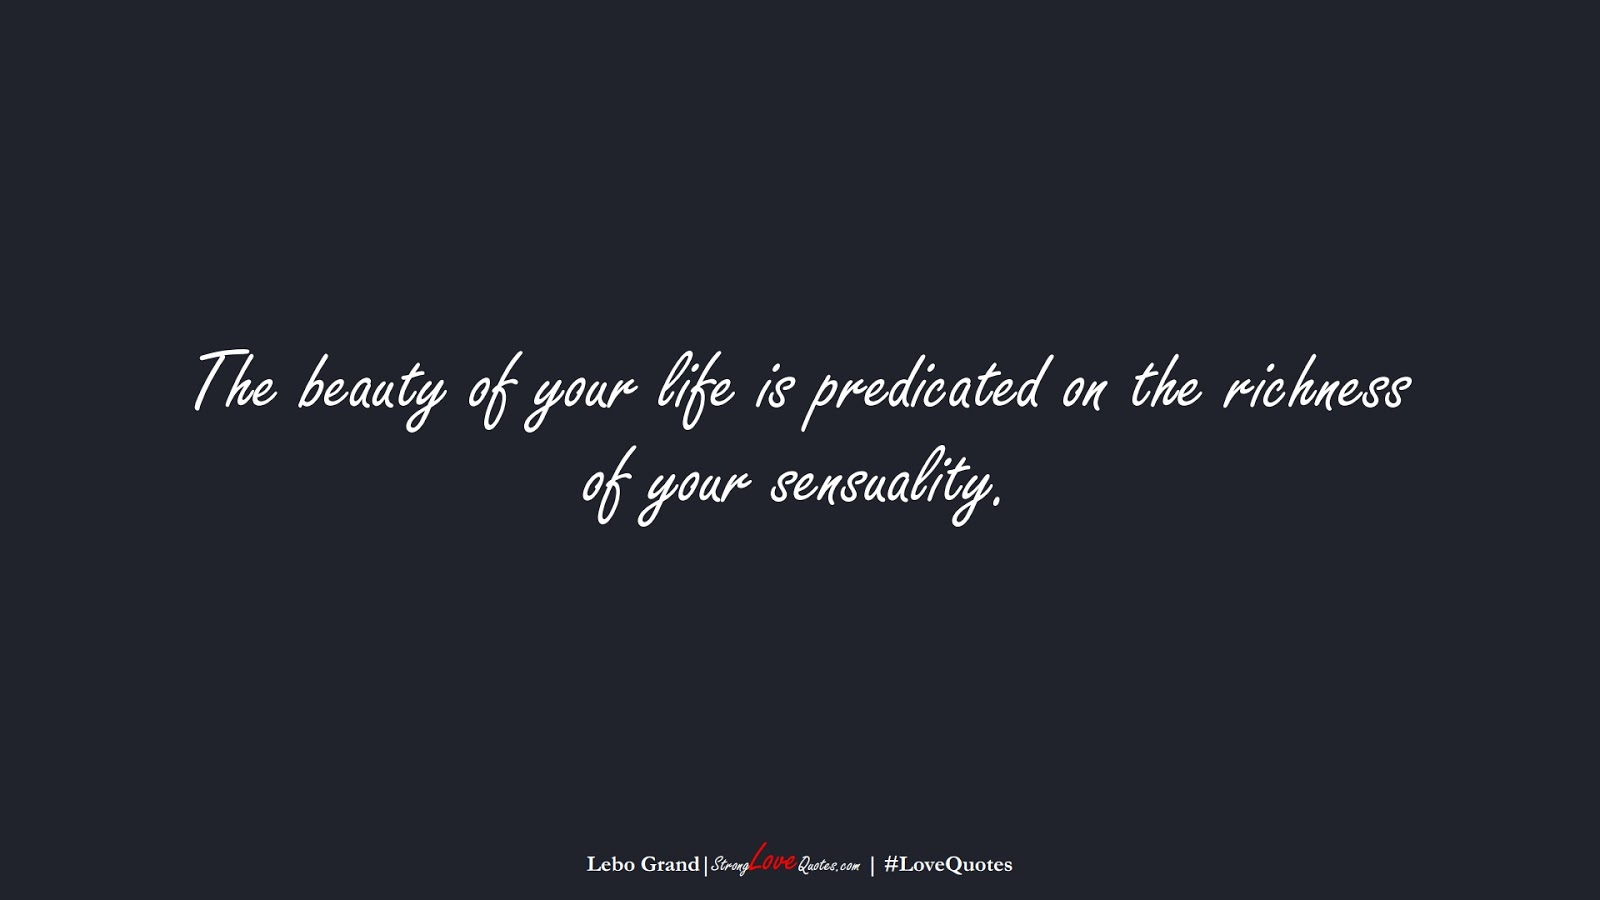 The beauty of your life is predicated on the richness of your sensuality. (Lebo Grand);  #LoveQuotes